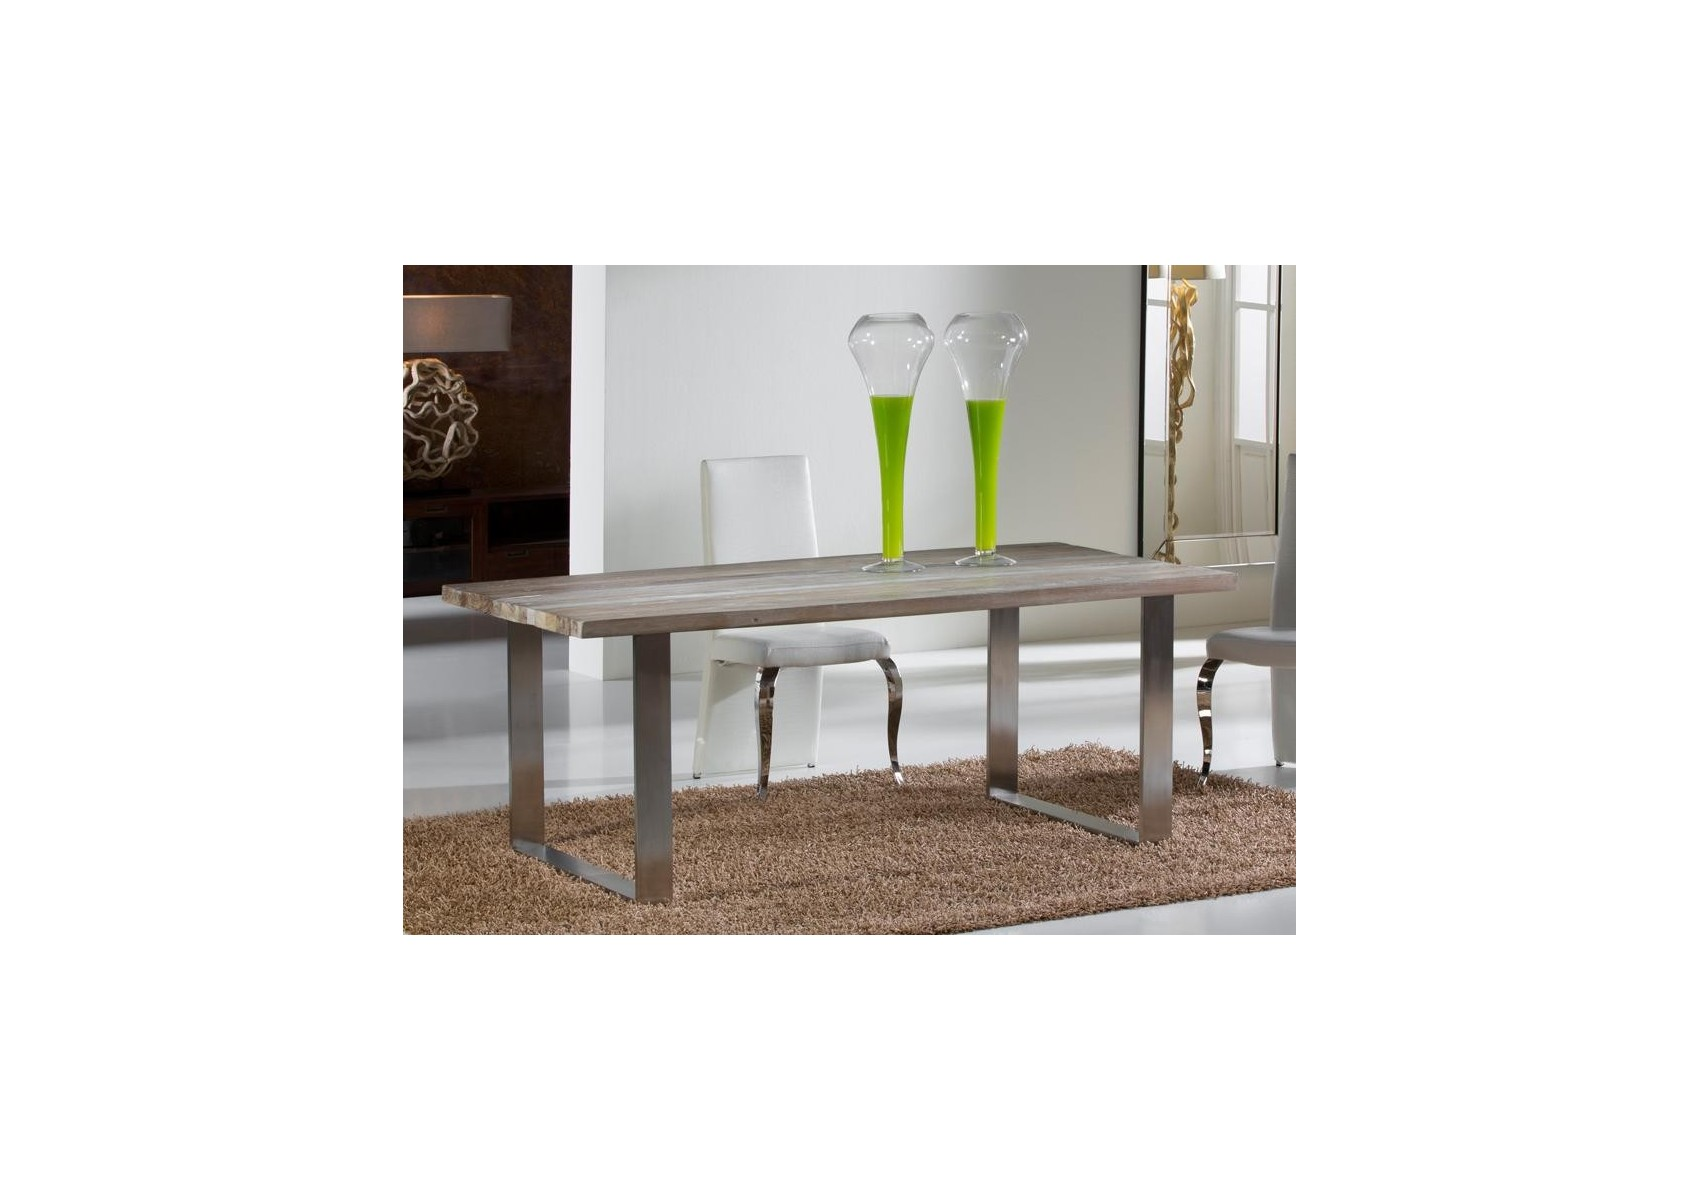 Model de table a manger en bois maison design for Salle a manger bois